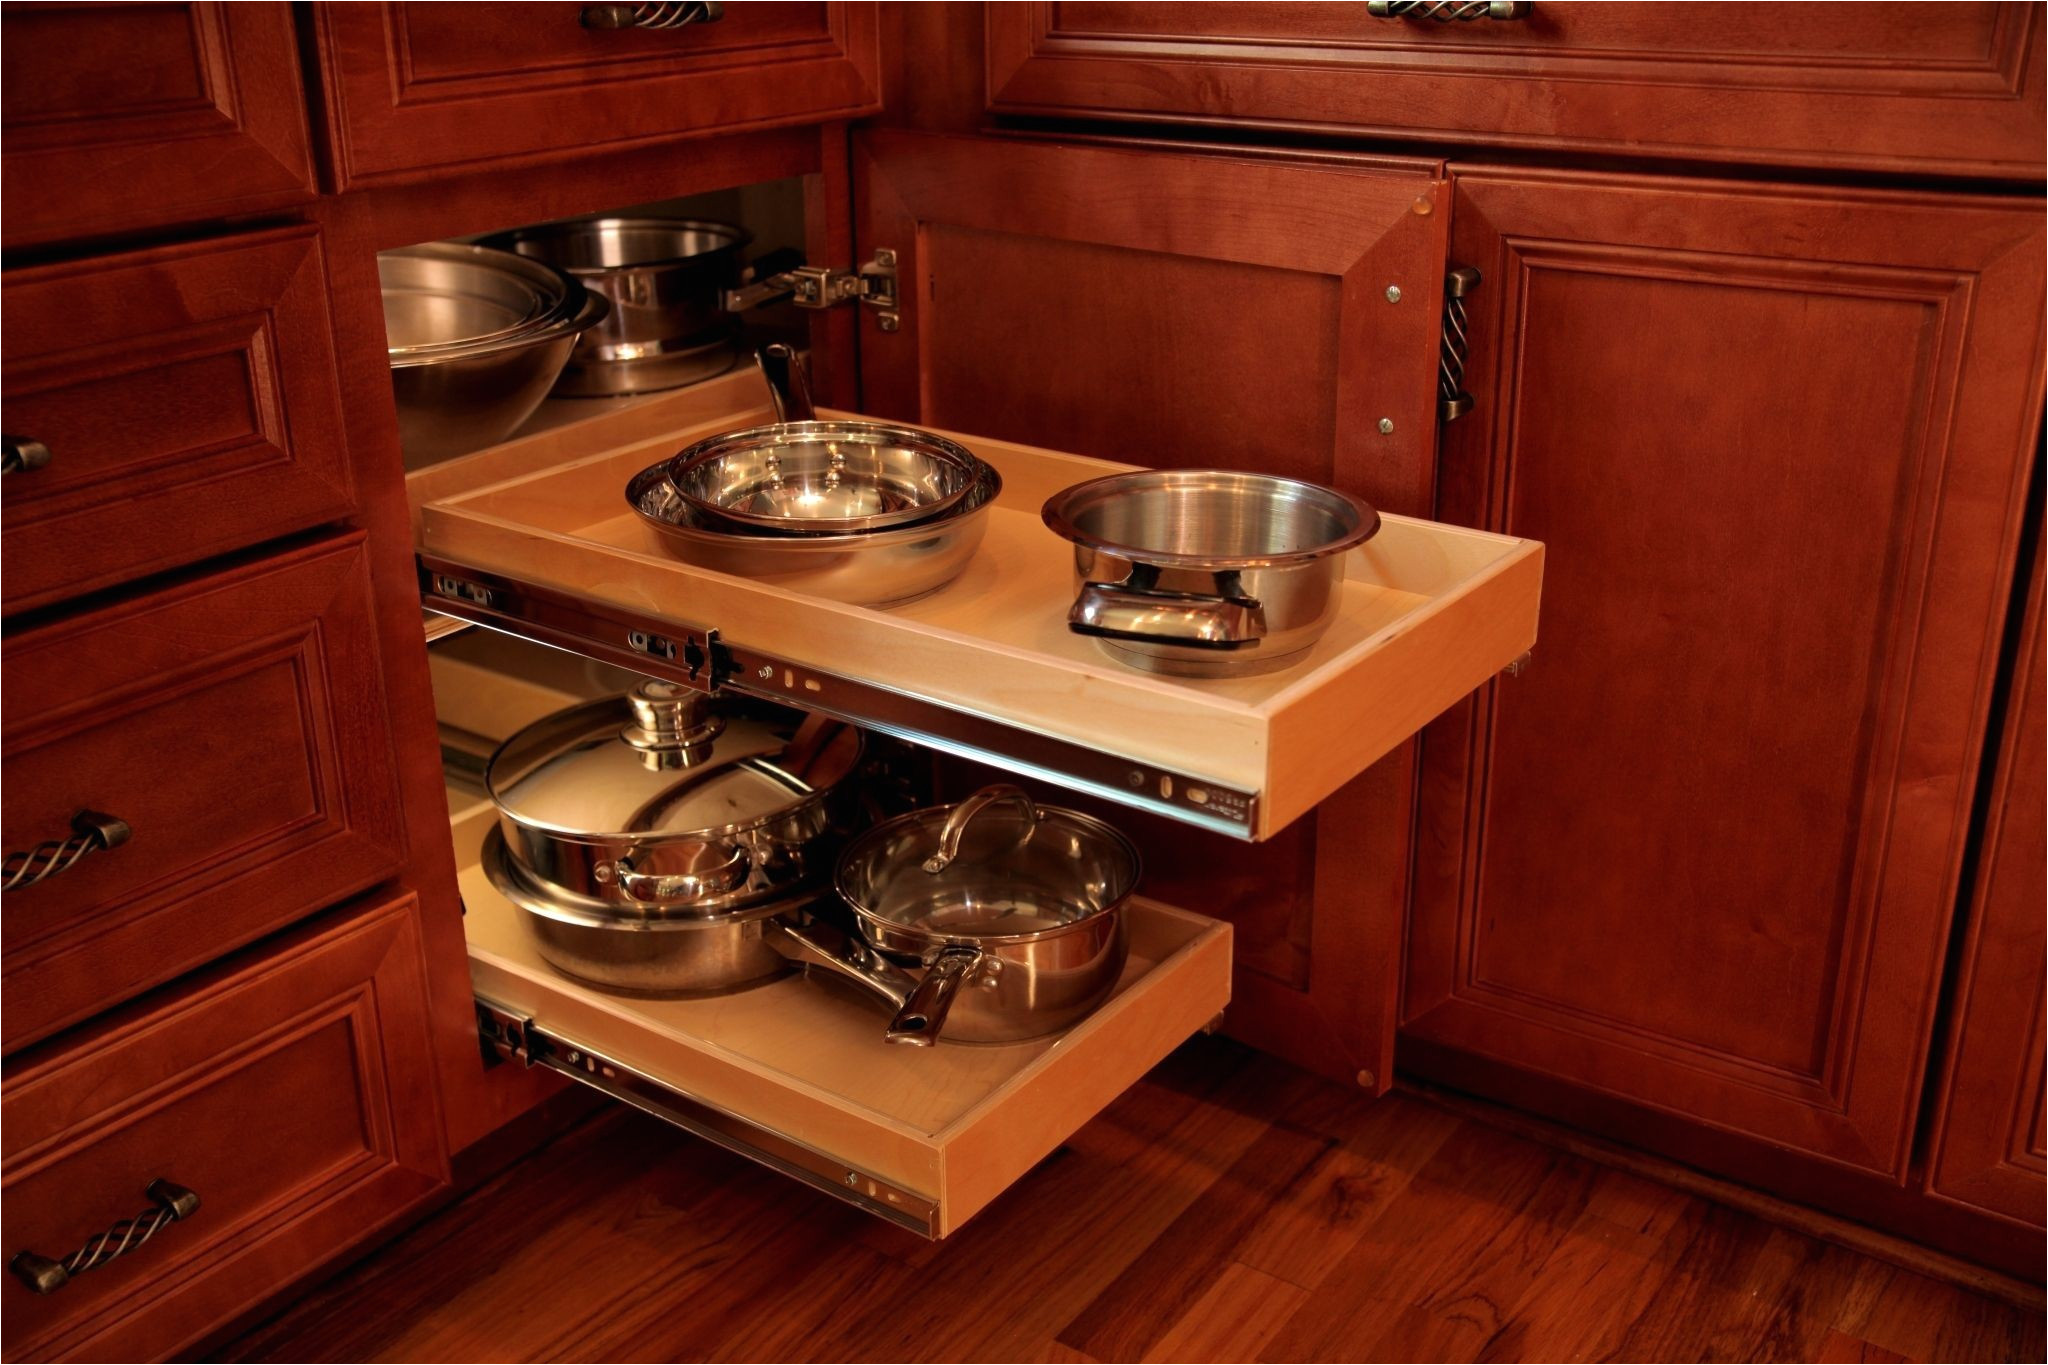 kitchen corner cabinet organizers classy blind corner kitchen cabinet organizers backsplash ideas for small